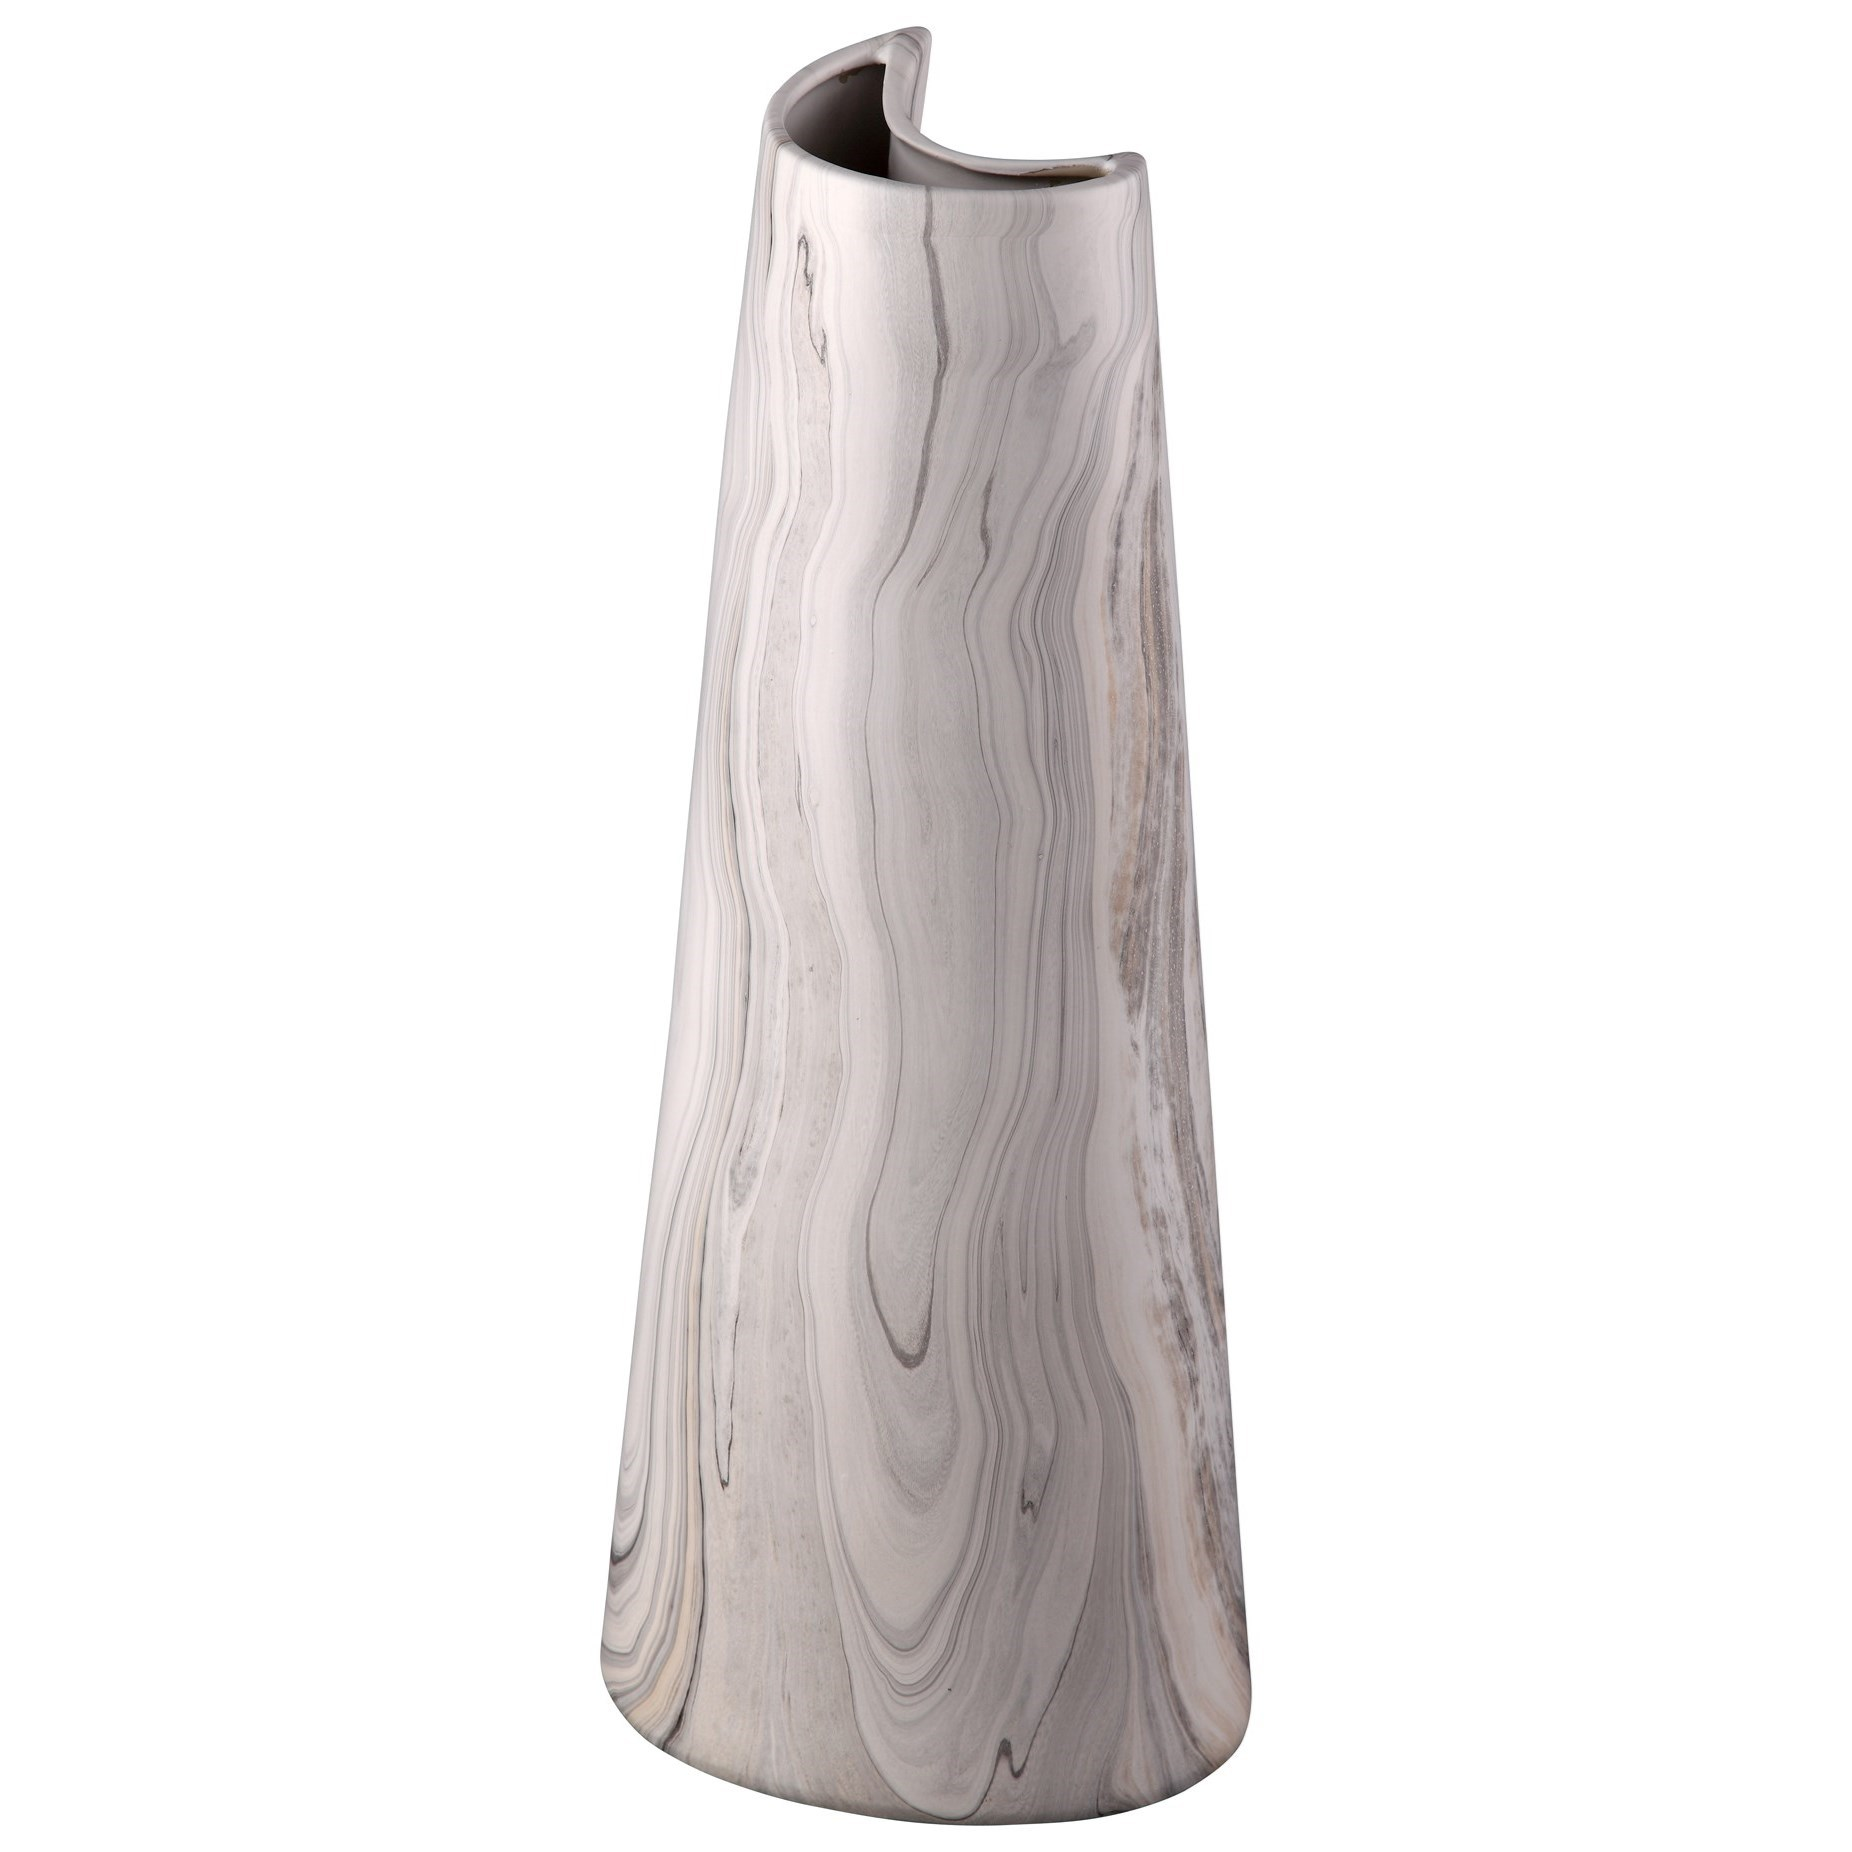 Vases & Urns Carrara Vase Crescent by Moe's Home Collection at Stoney Creek Furniture